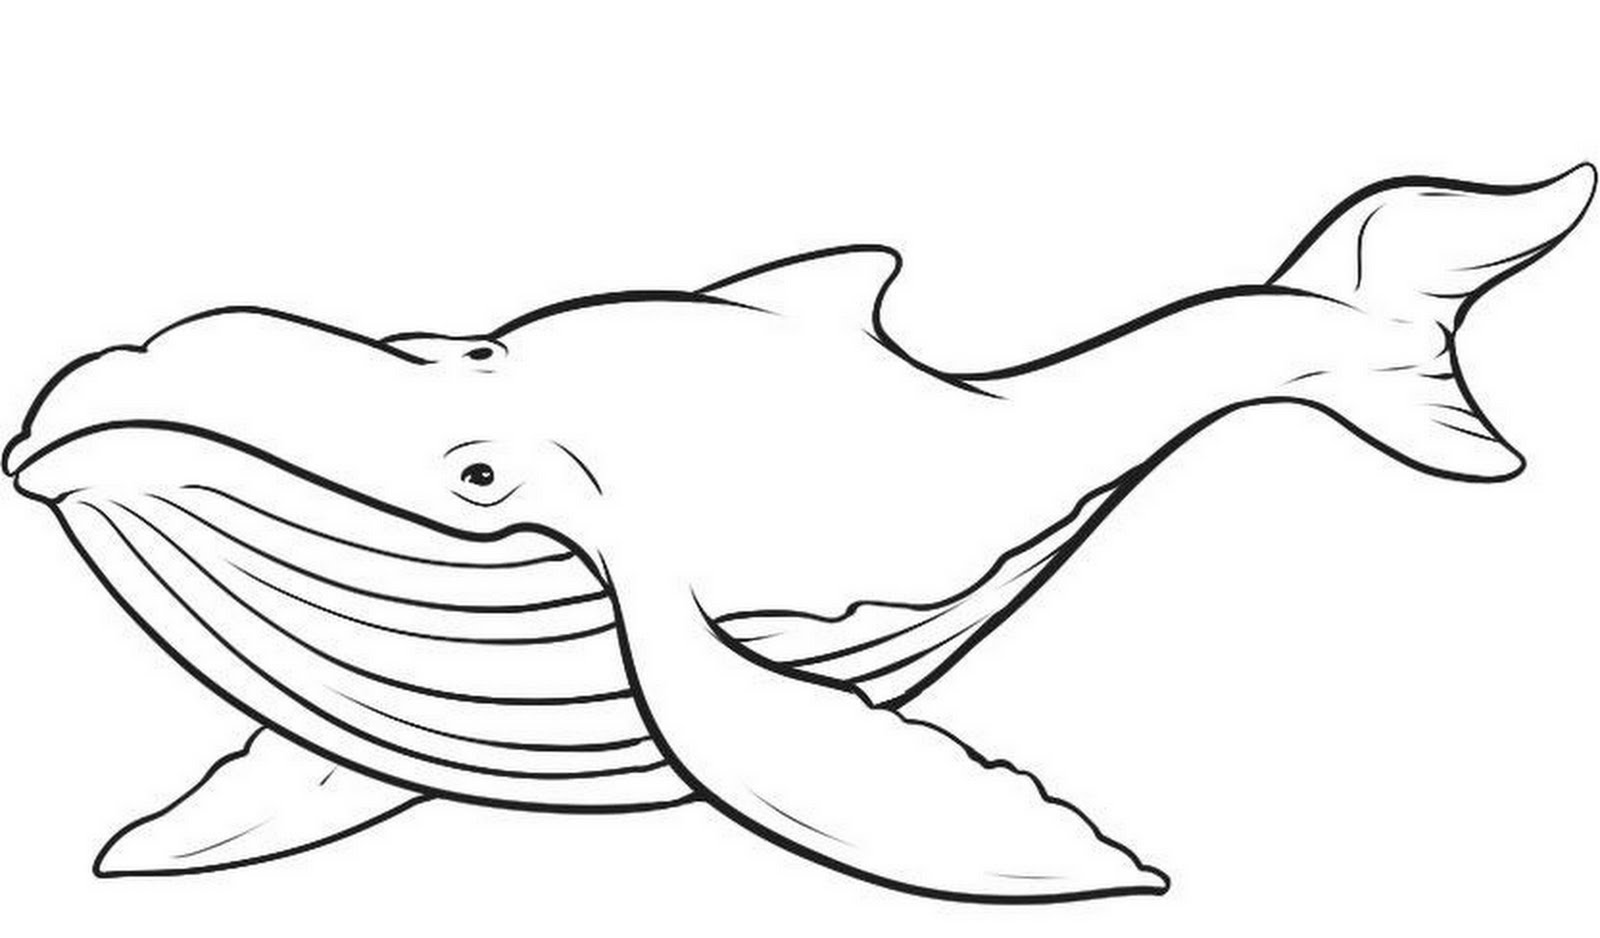 Humpback whale clipart - photo#16